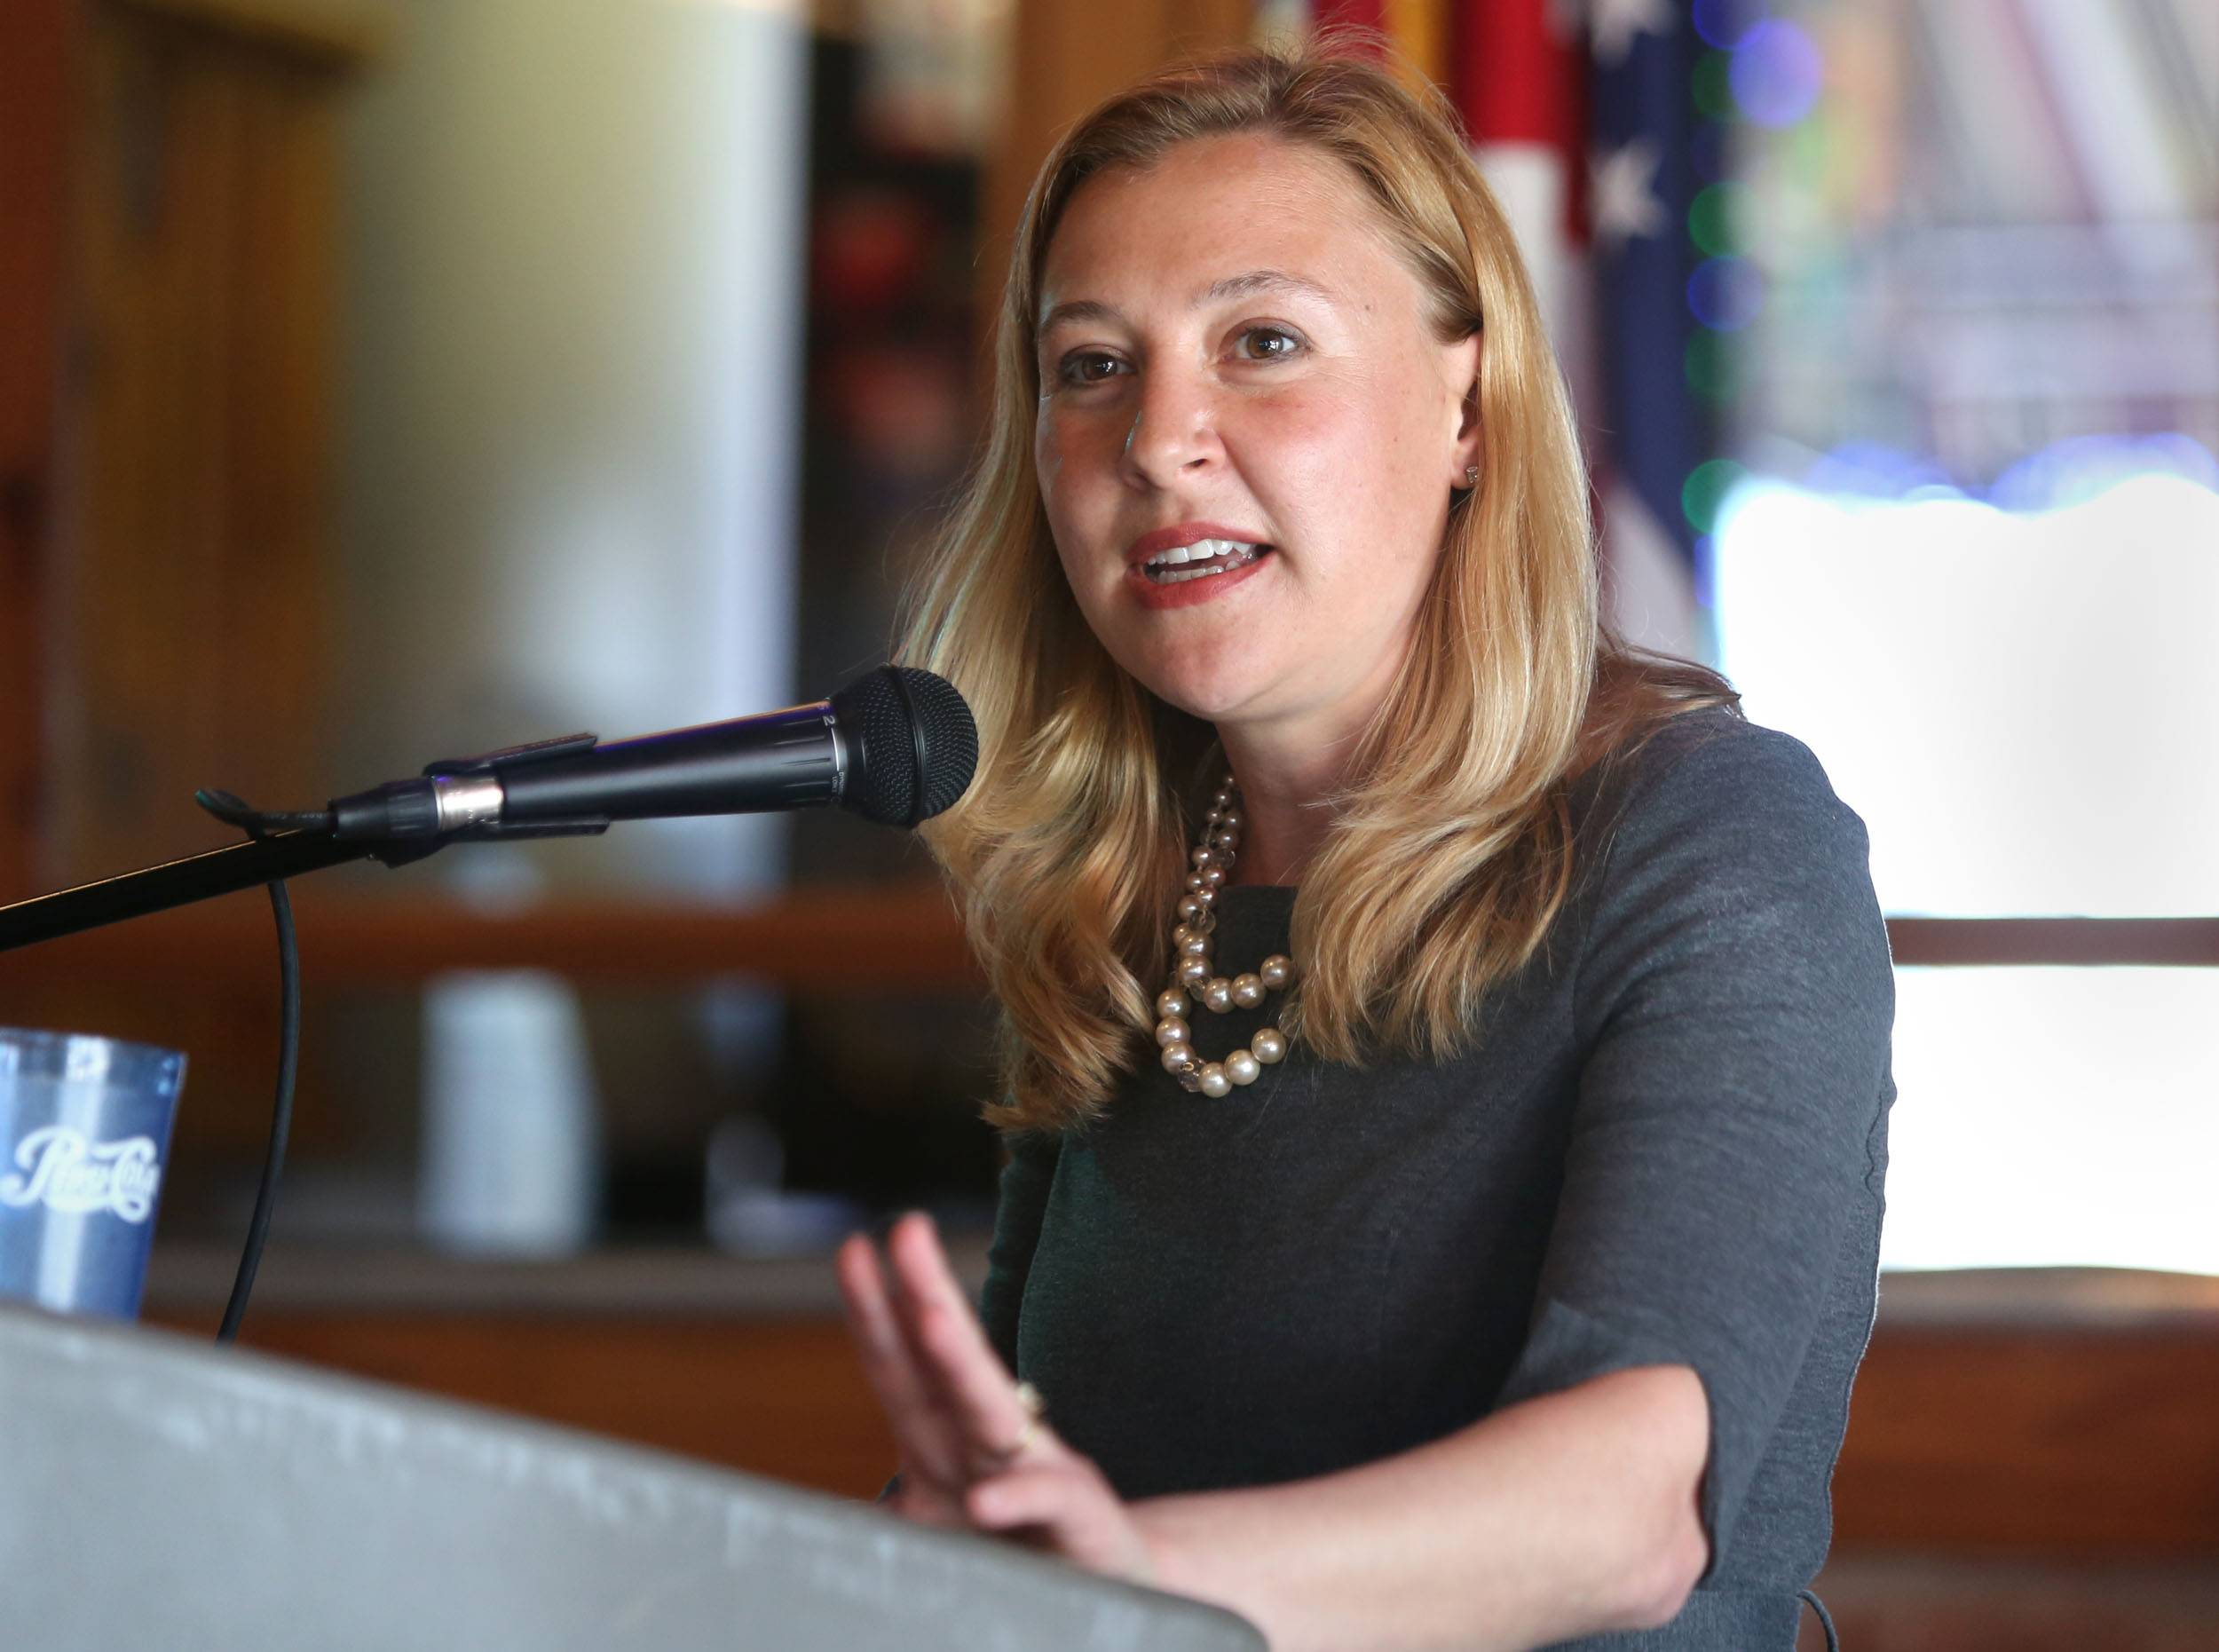 New state Rep. Anna Moeller addresses supporters at Danny's Pizza in downtown Elgin on Sunday after her swearing in ceremony.